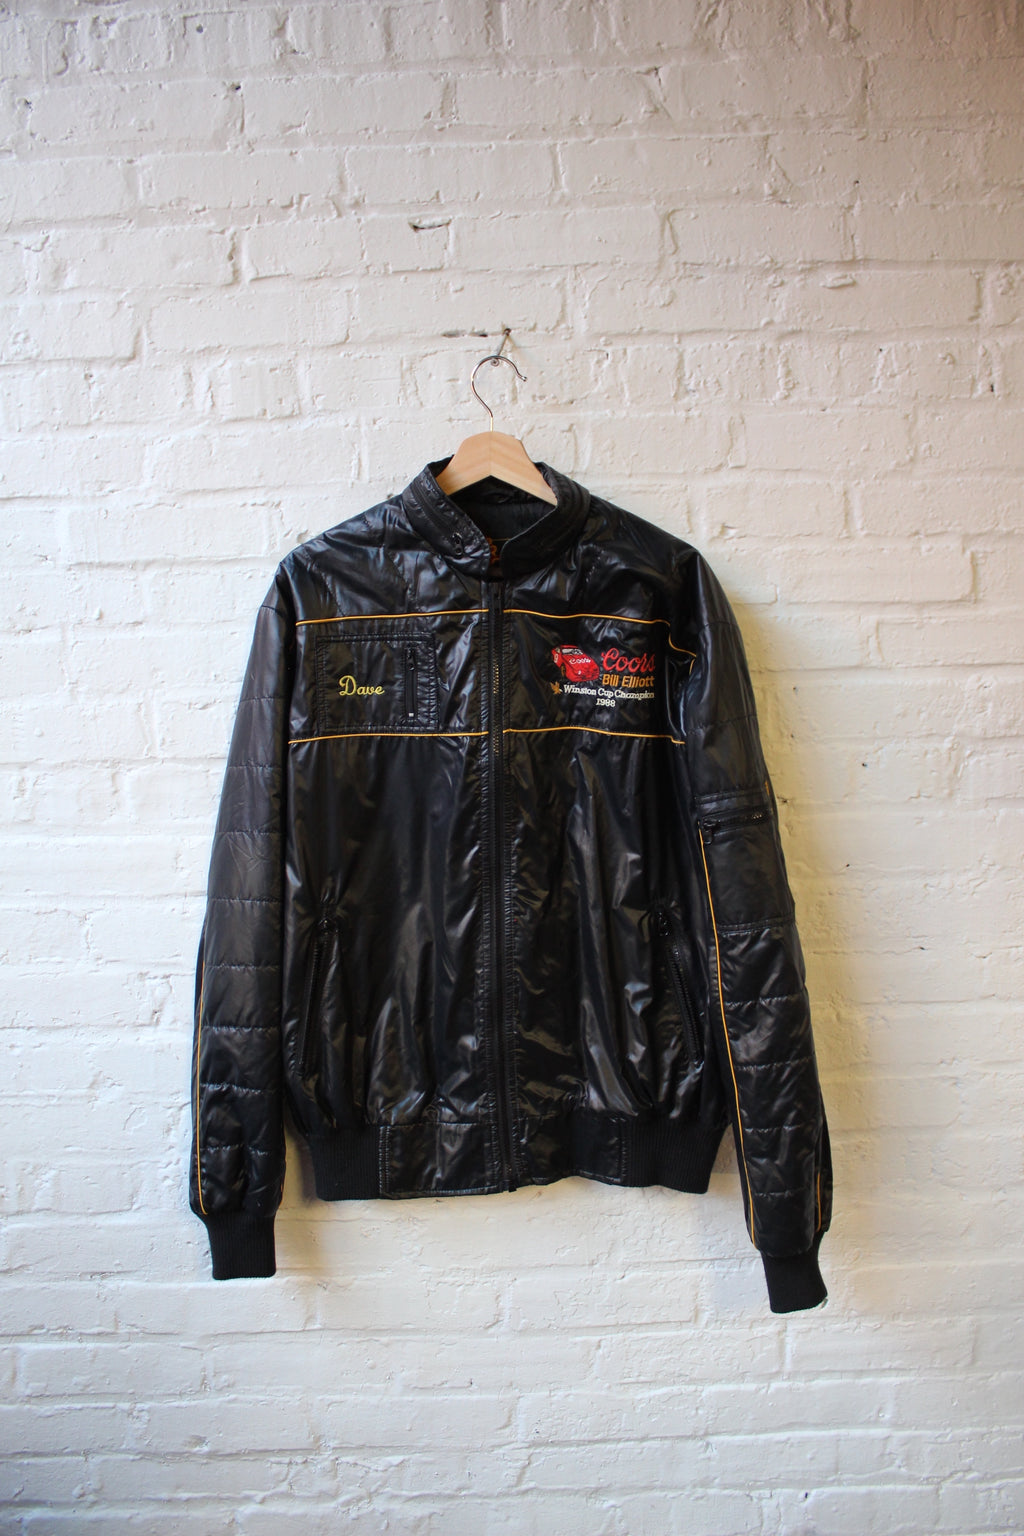 Coors Bill Elliott 1988 Jacket